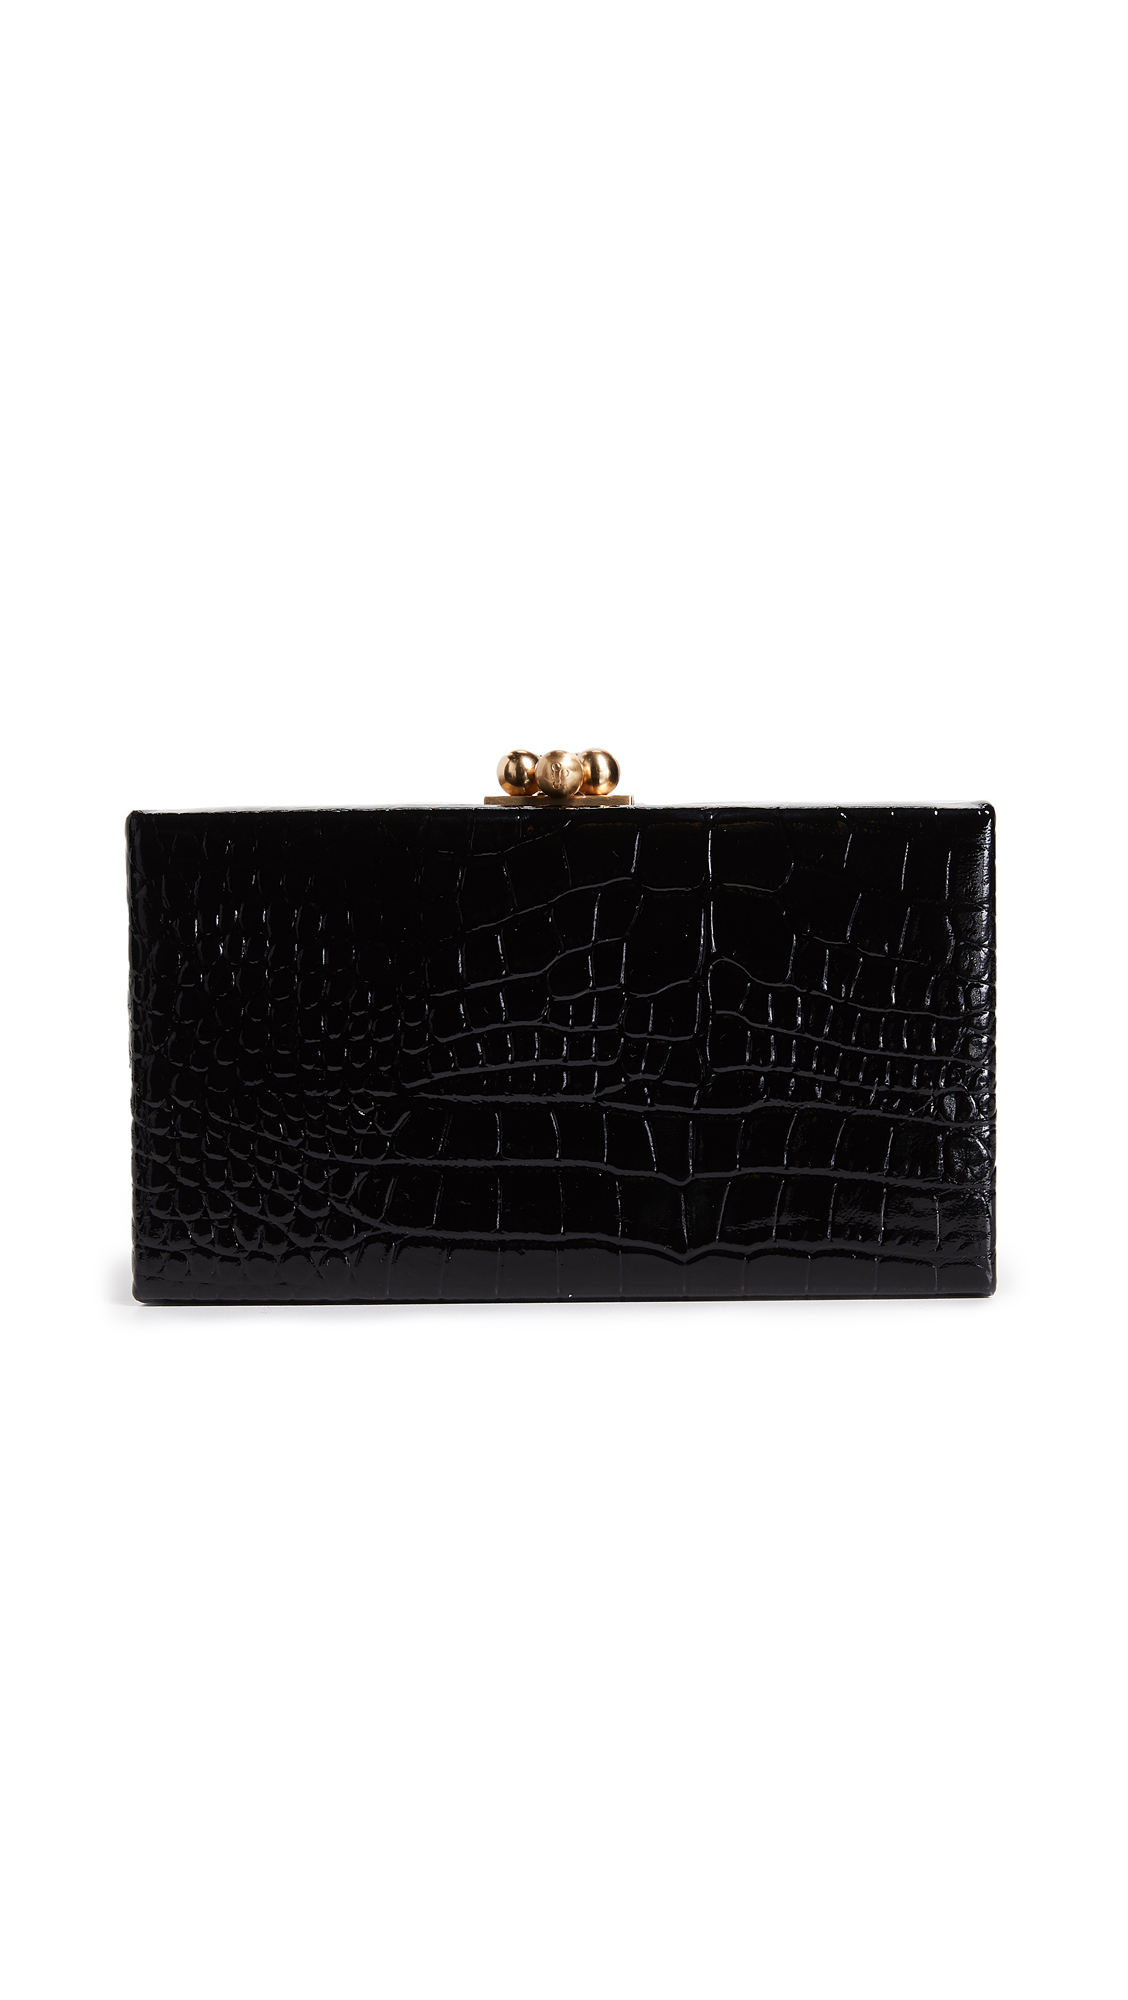 Edie Parker Jean Box Clutch - Black